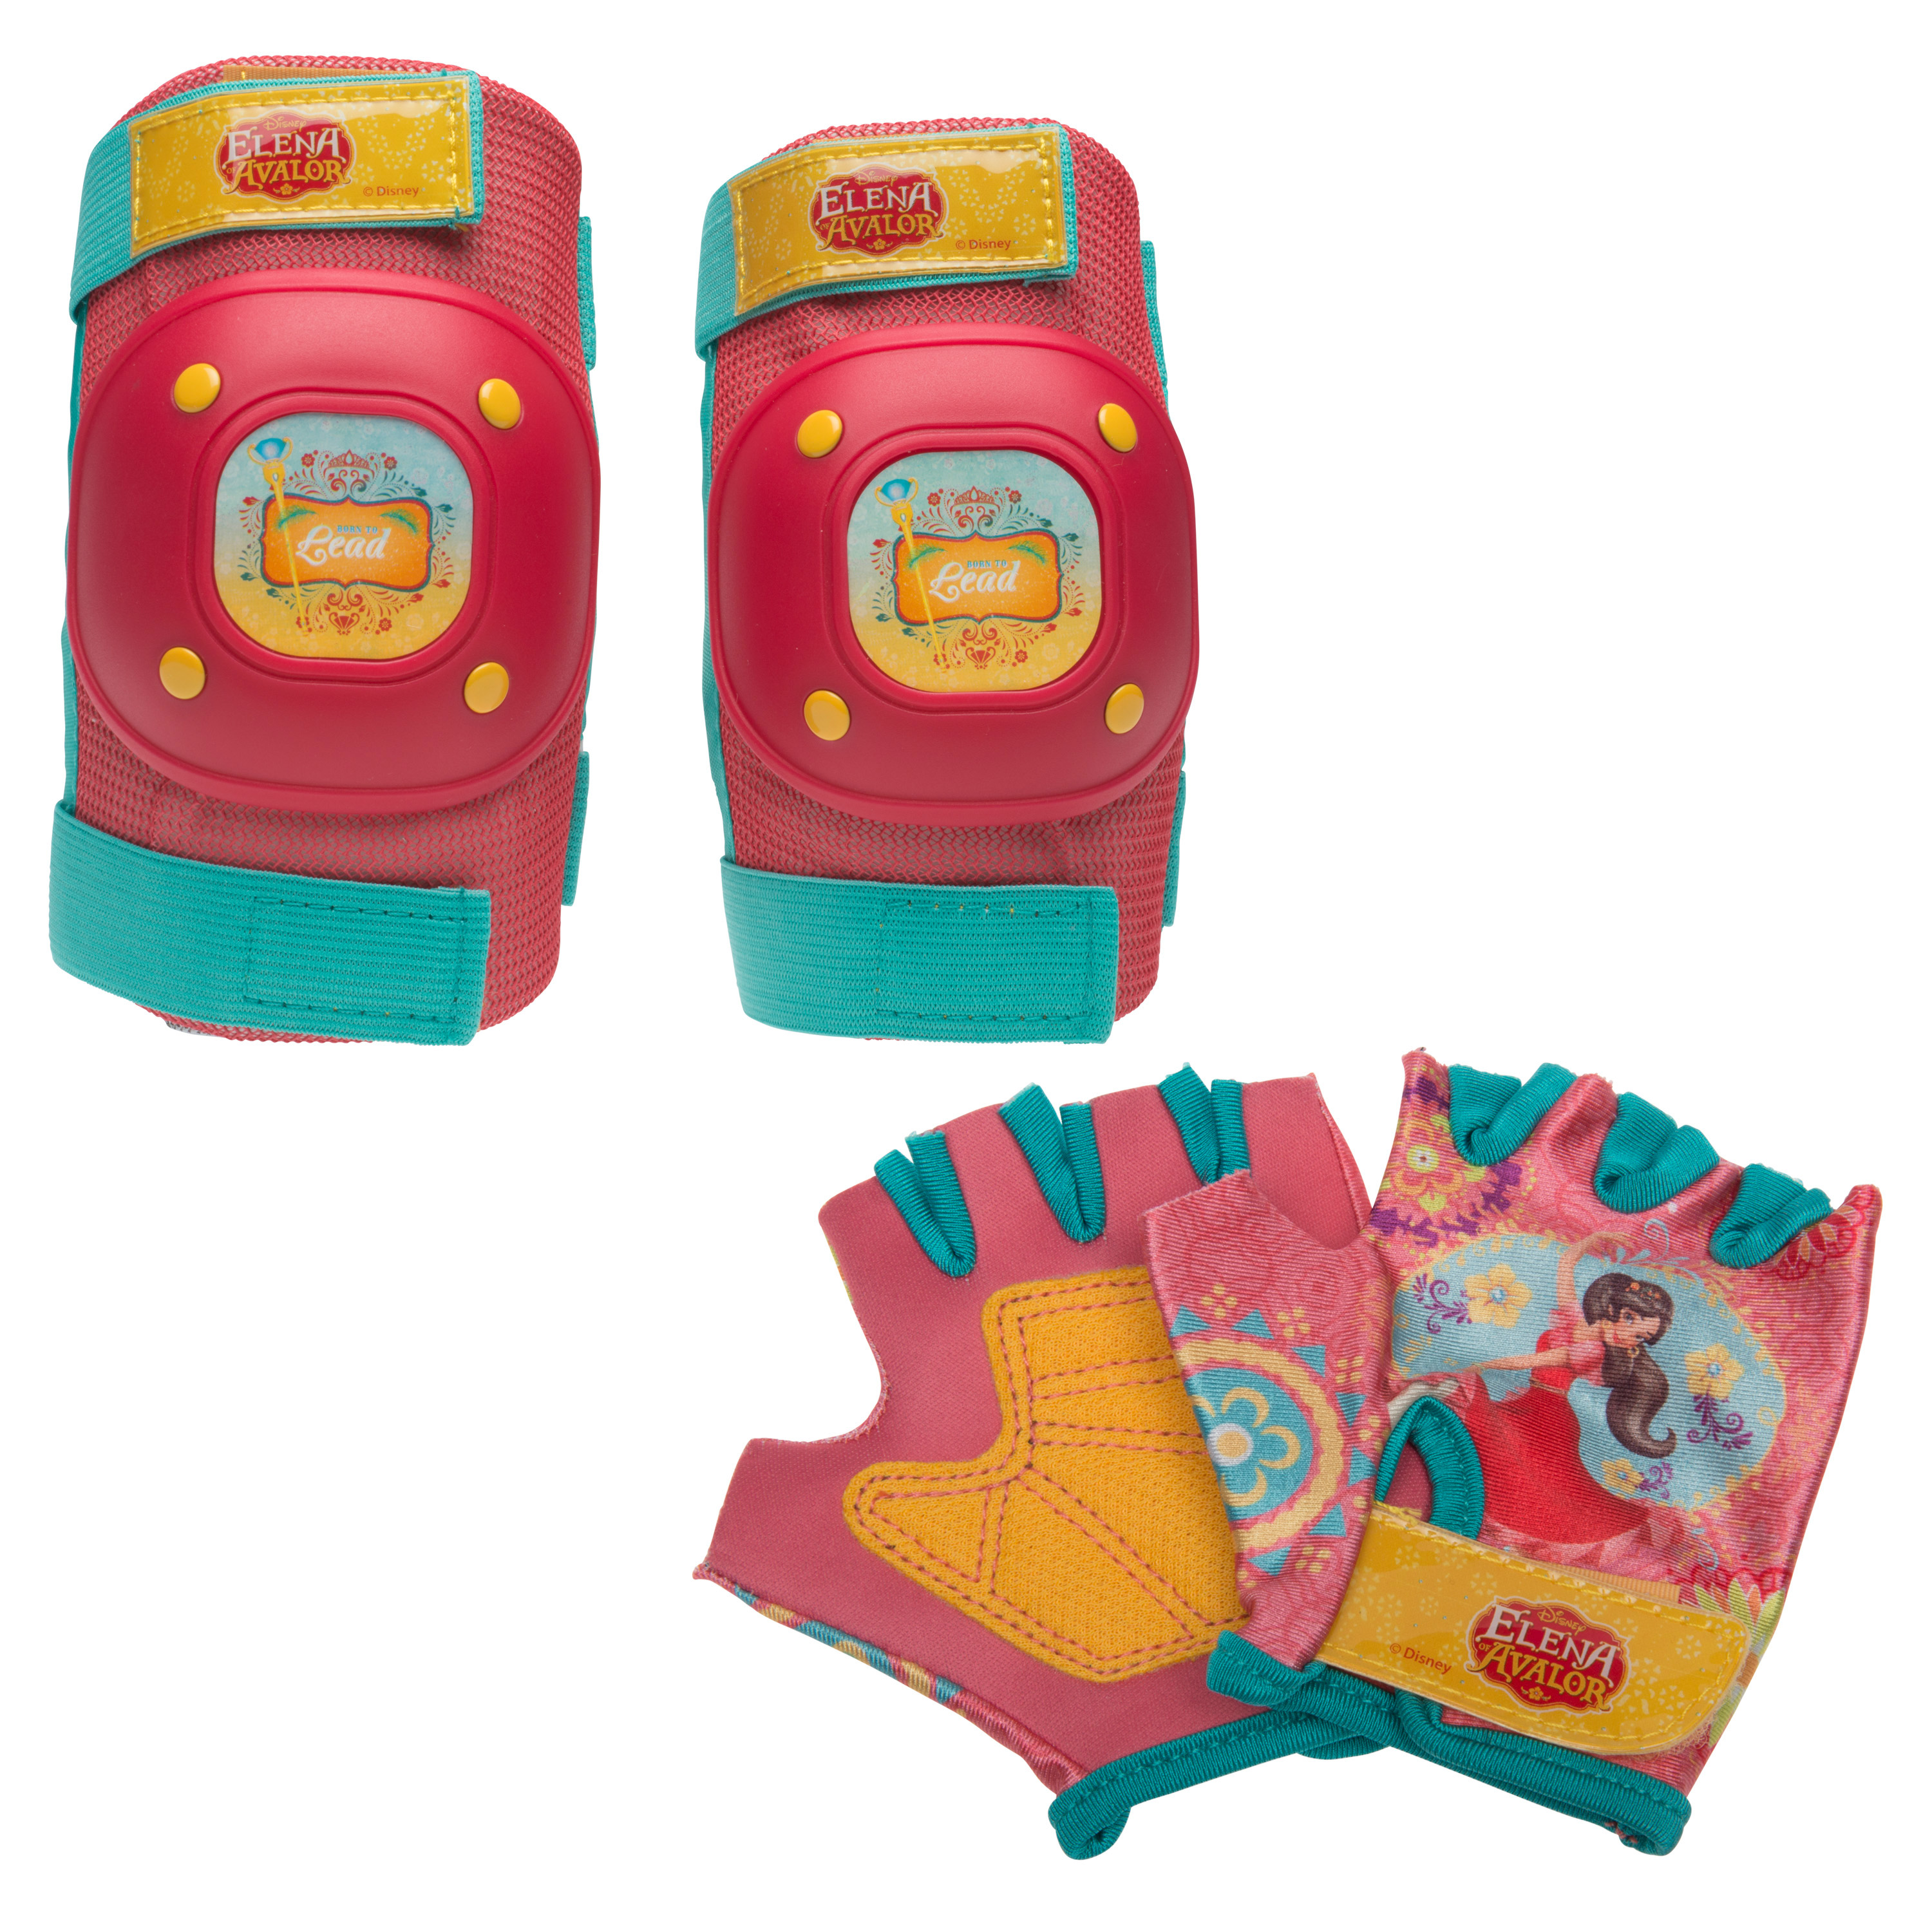 Bell Sports Disney Elena of Avalor Protective Pad and Glove Set, Red